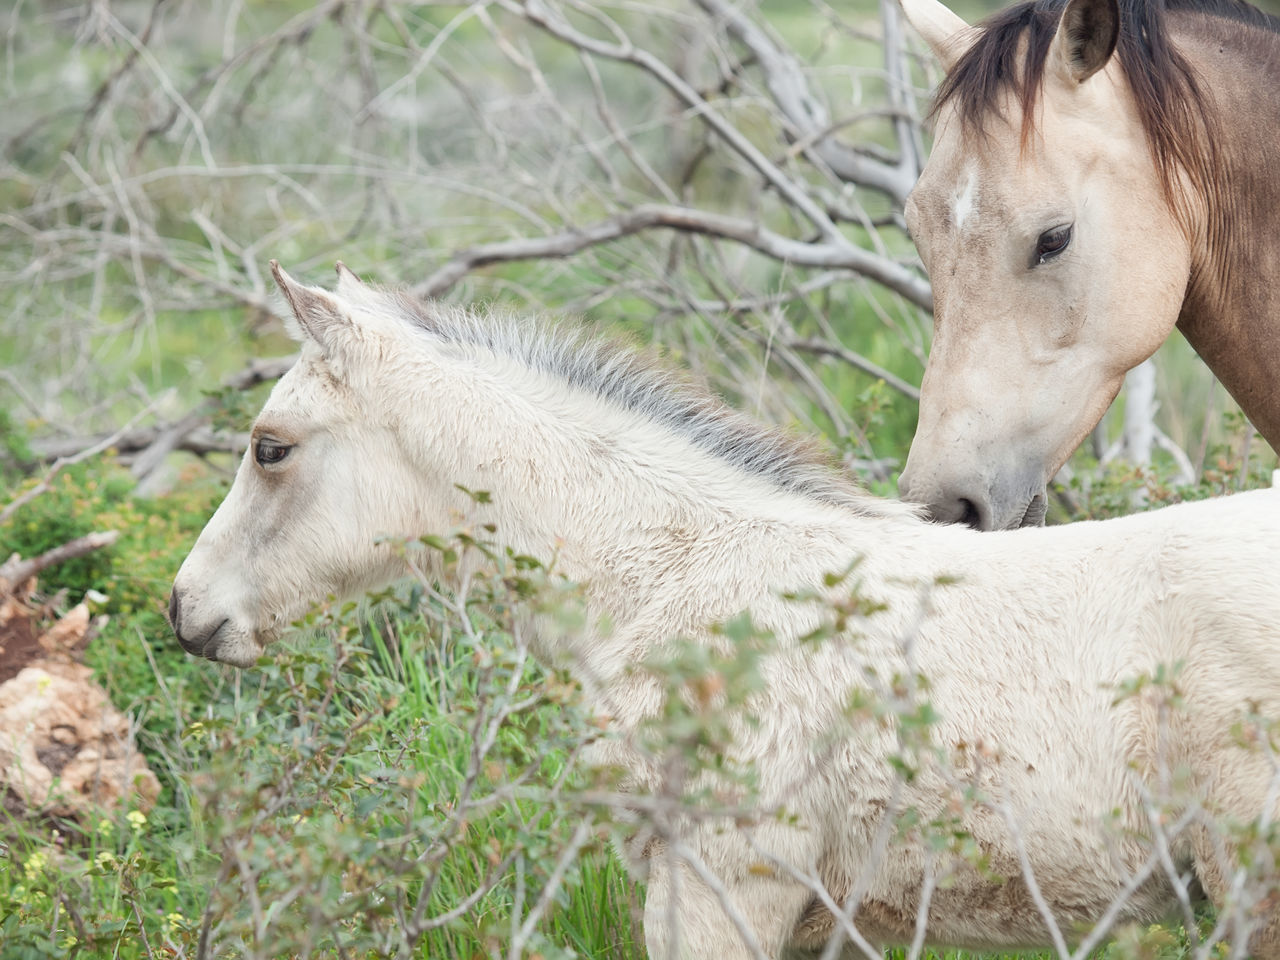 one animal, animal themes, mammal, horse, domestic animals, livestock, field, day, outdoors, animals in the wild, no people, grass, nature, close-up